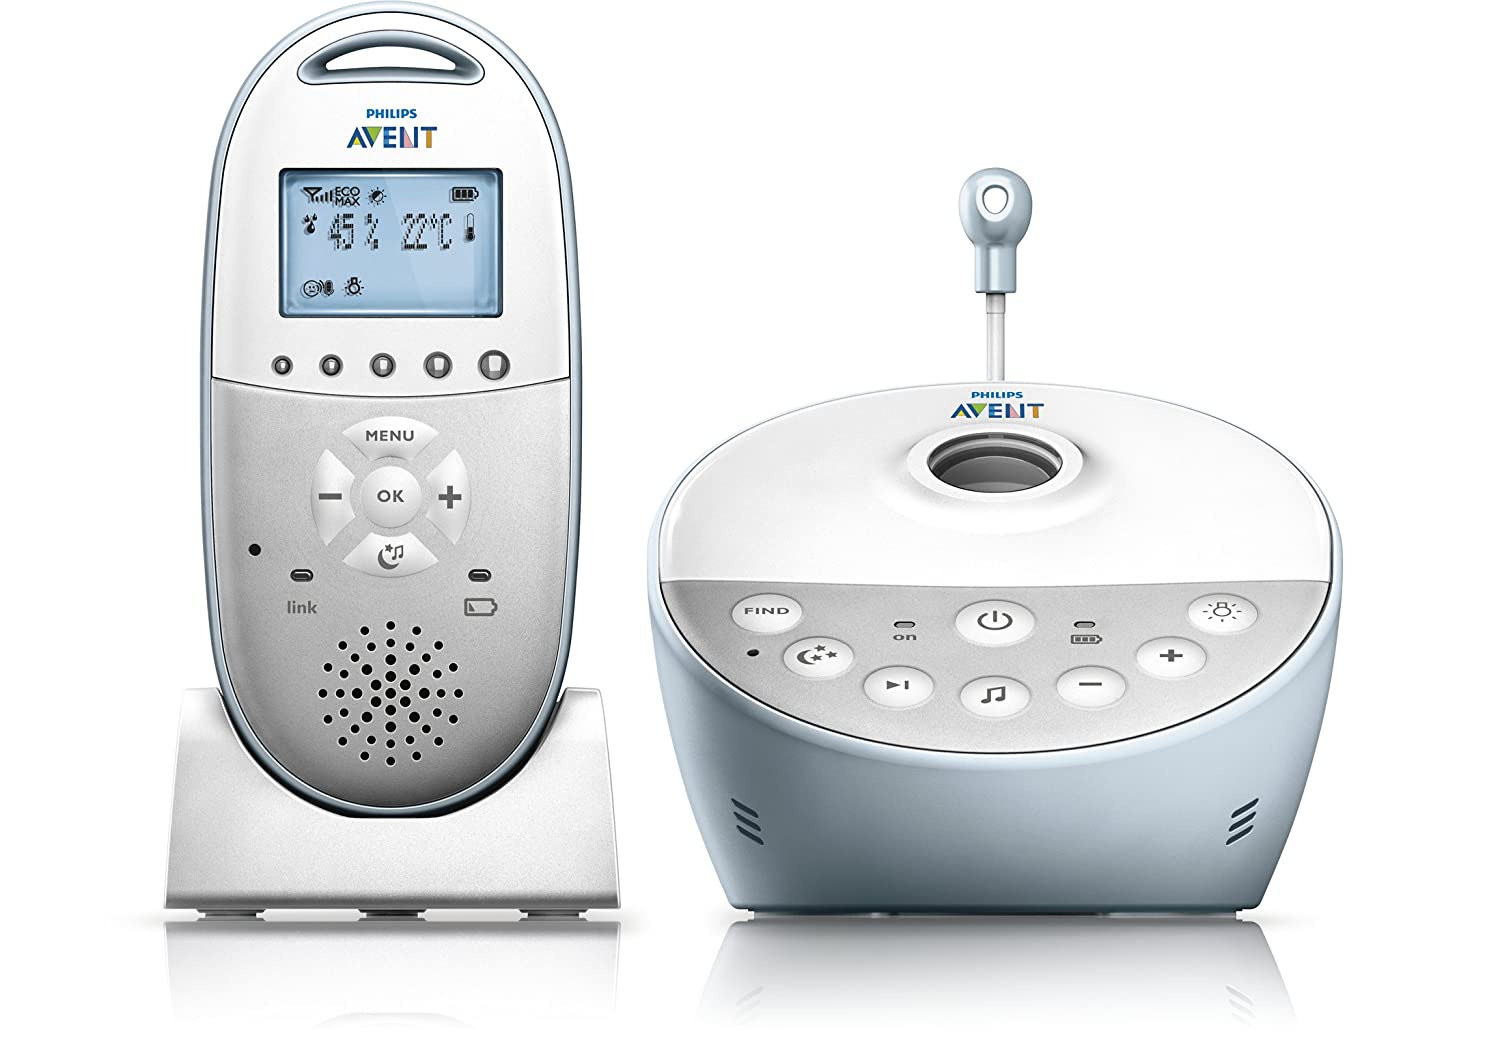 Philips AVENT DECT Baby Monitor SCD580/01 with Starry Night Projector and Climate Alert SCD580/00